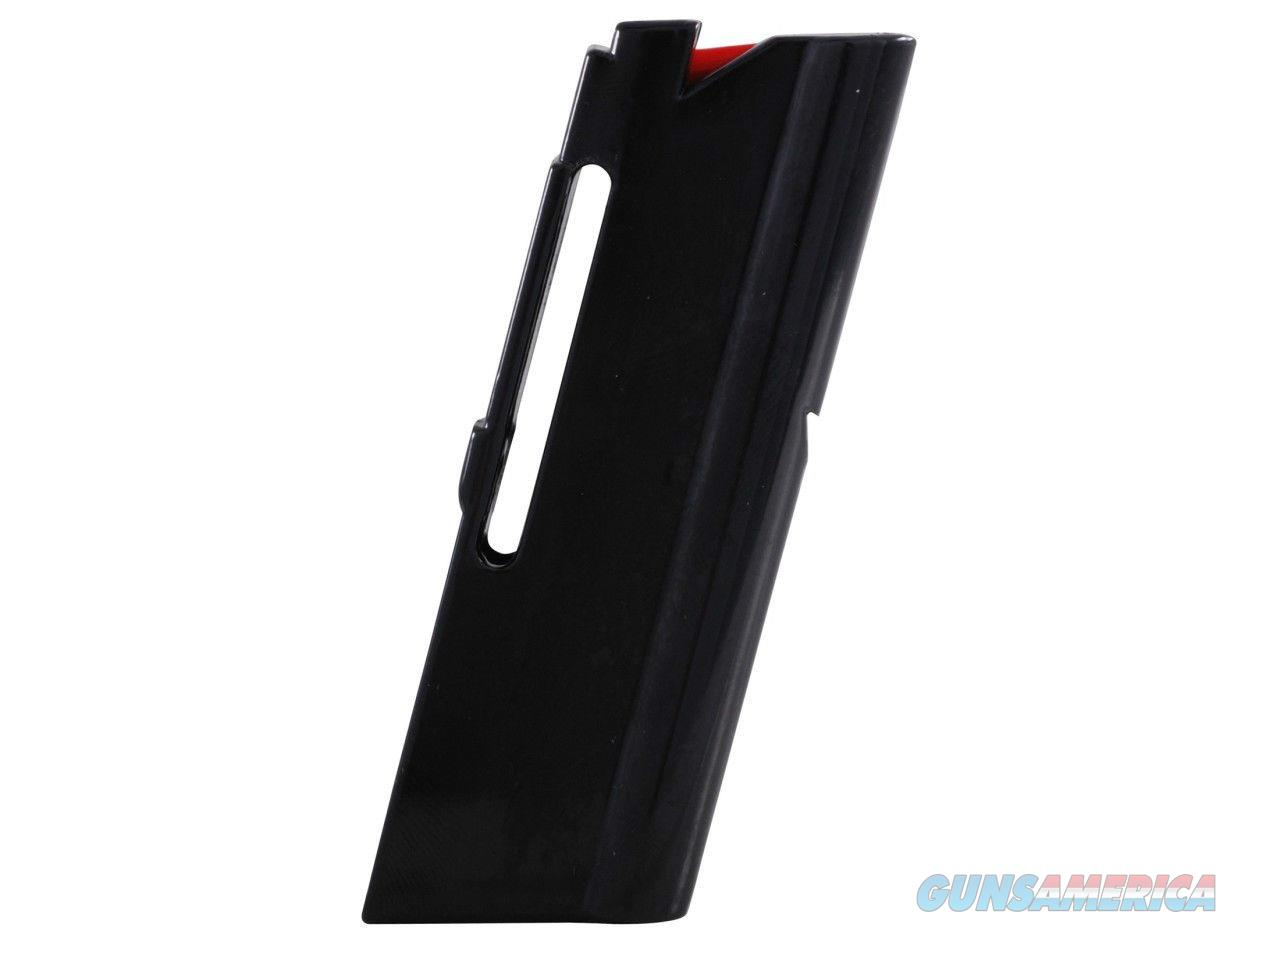 Savage Model 62 64 954 .22 LR 10 Round Magazine  Non-Guns > Magazines & Clips > Rifle Magazines > Other